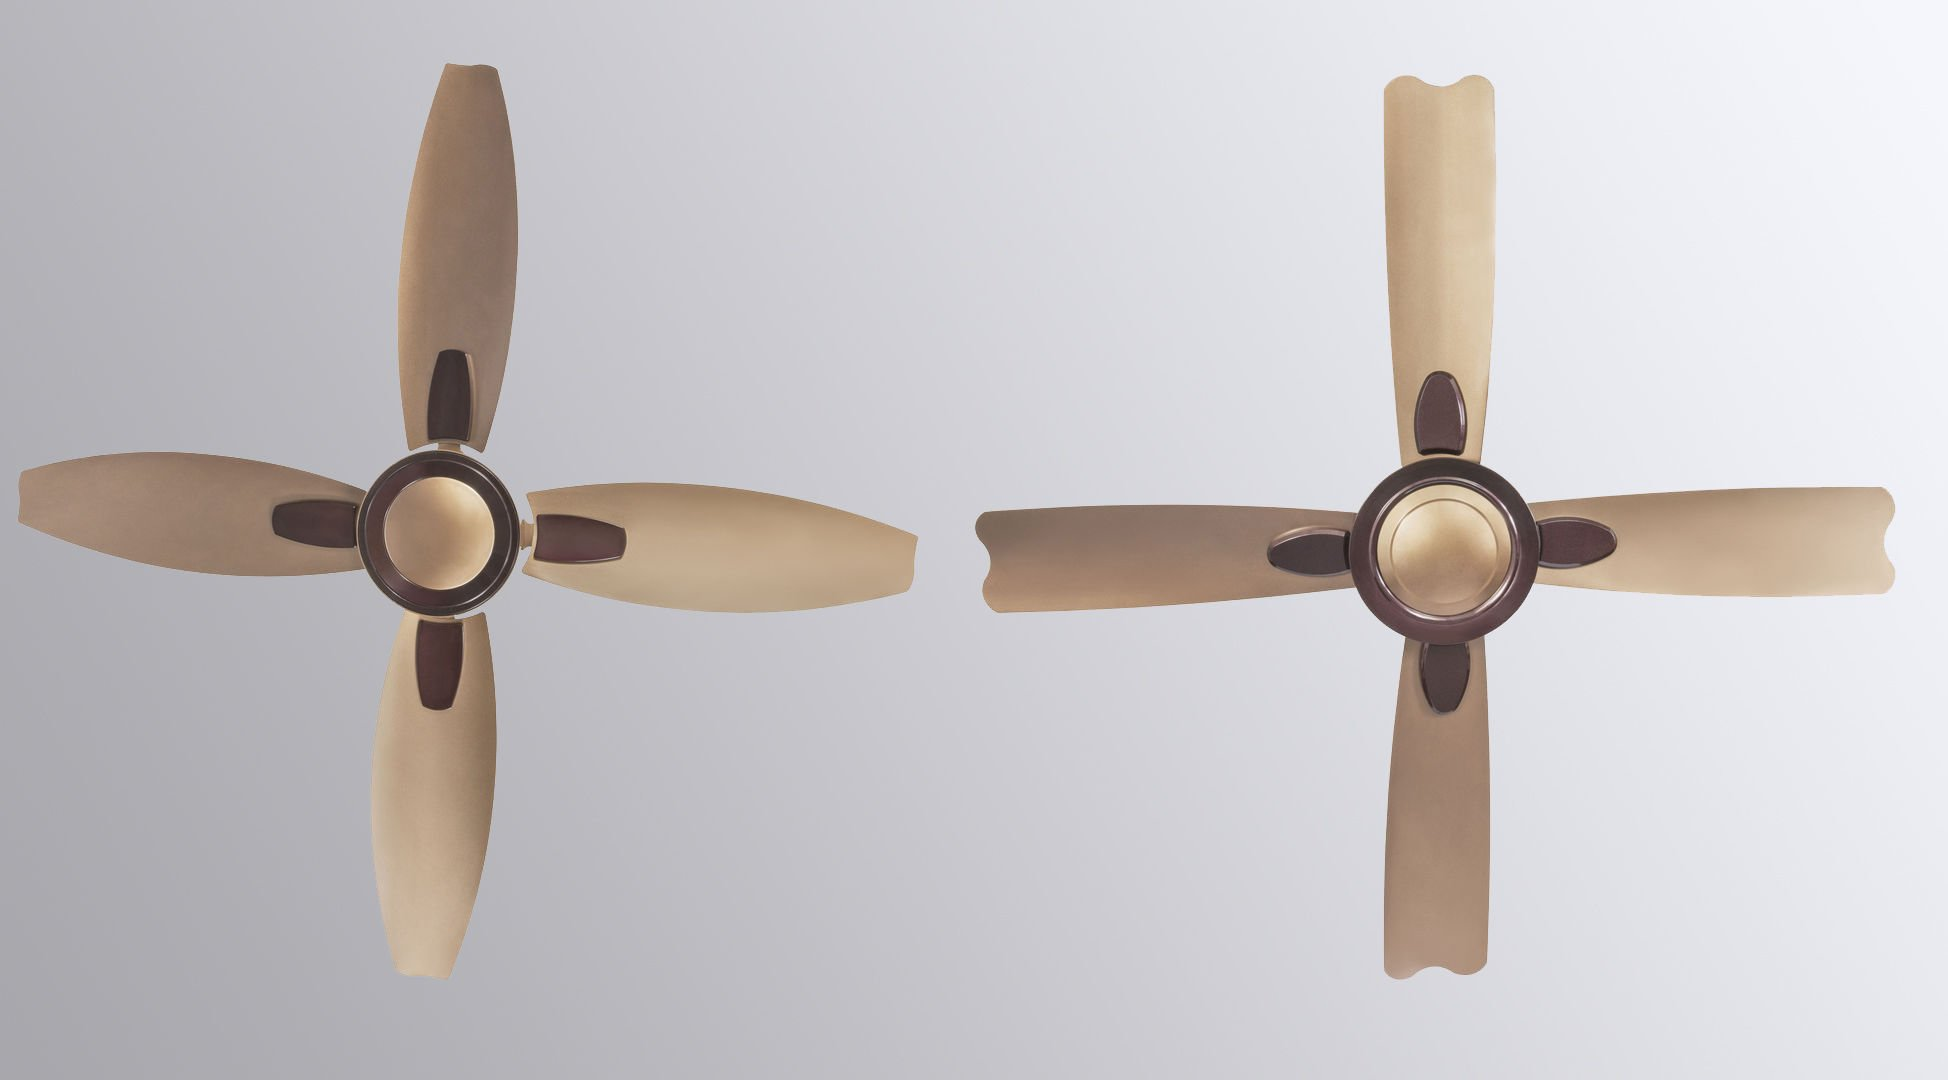 Checkout Usha New Models in Bloom Fan Series - Price and Color